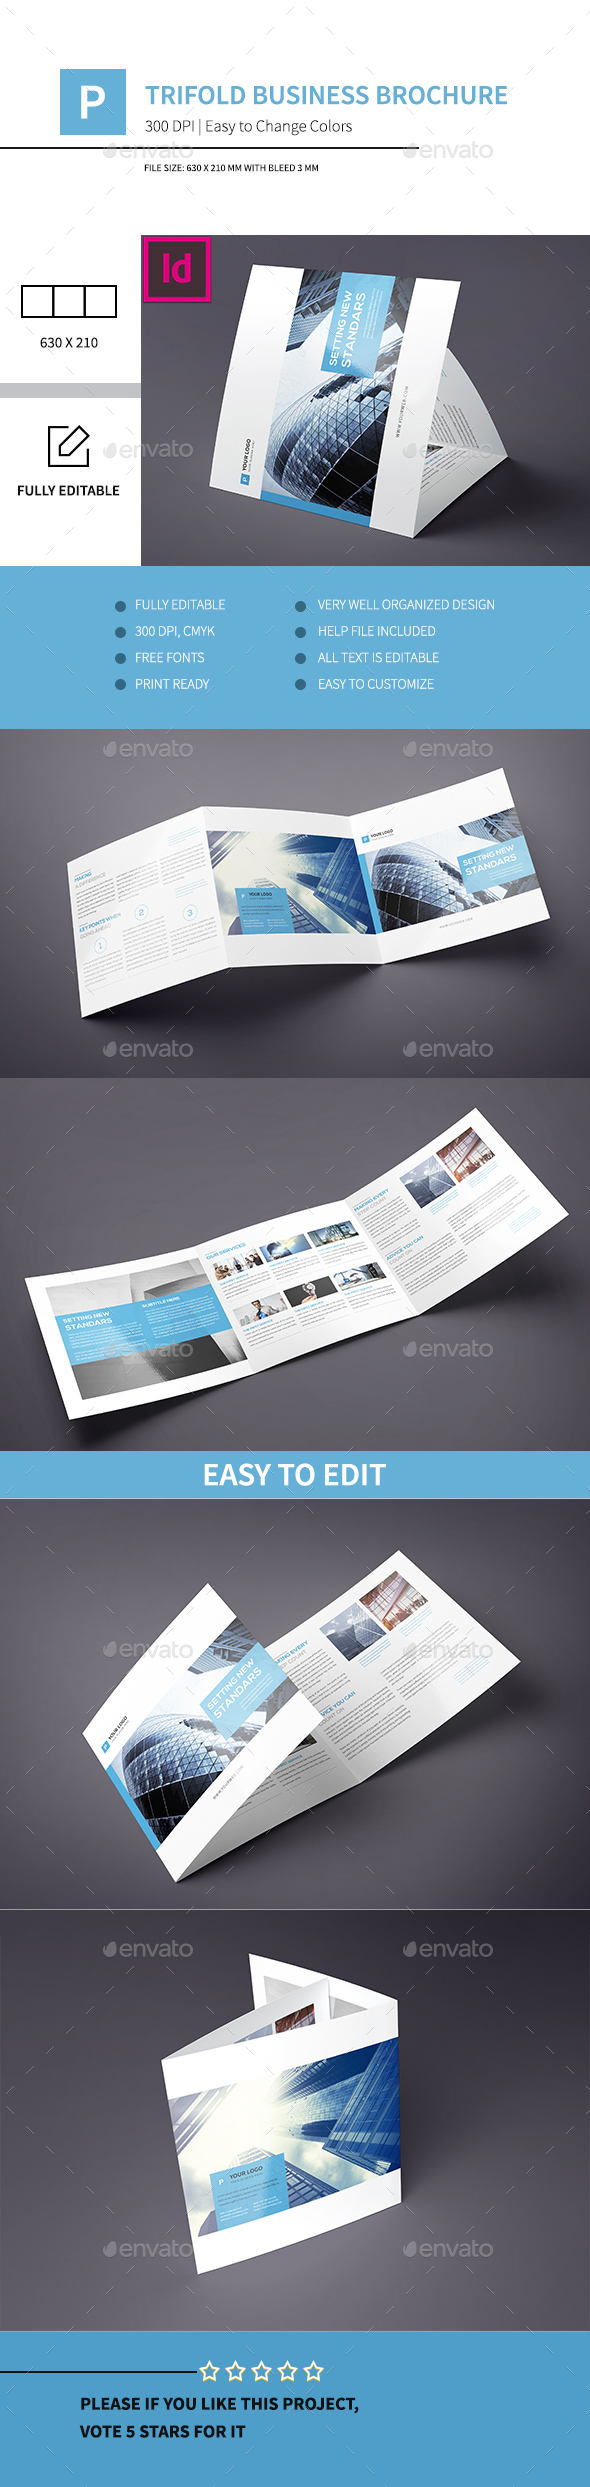 Trifold Business Brochure Indd - Corporate Brochures